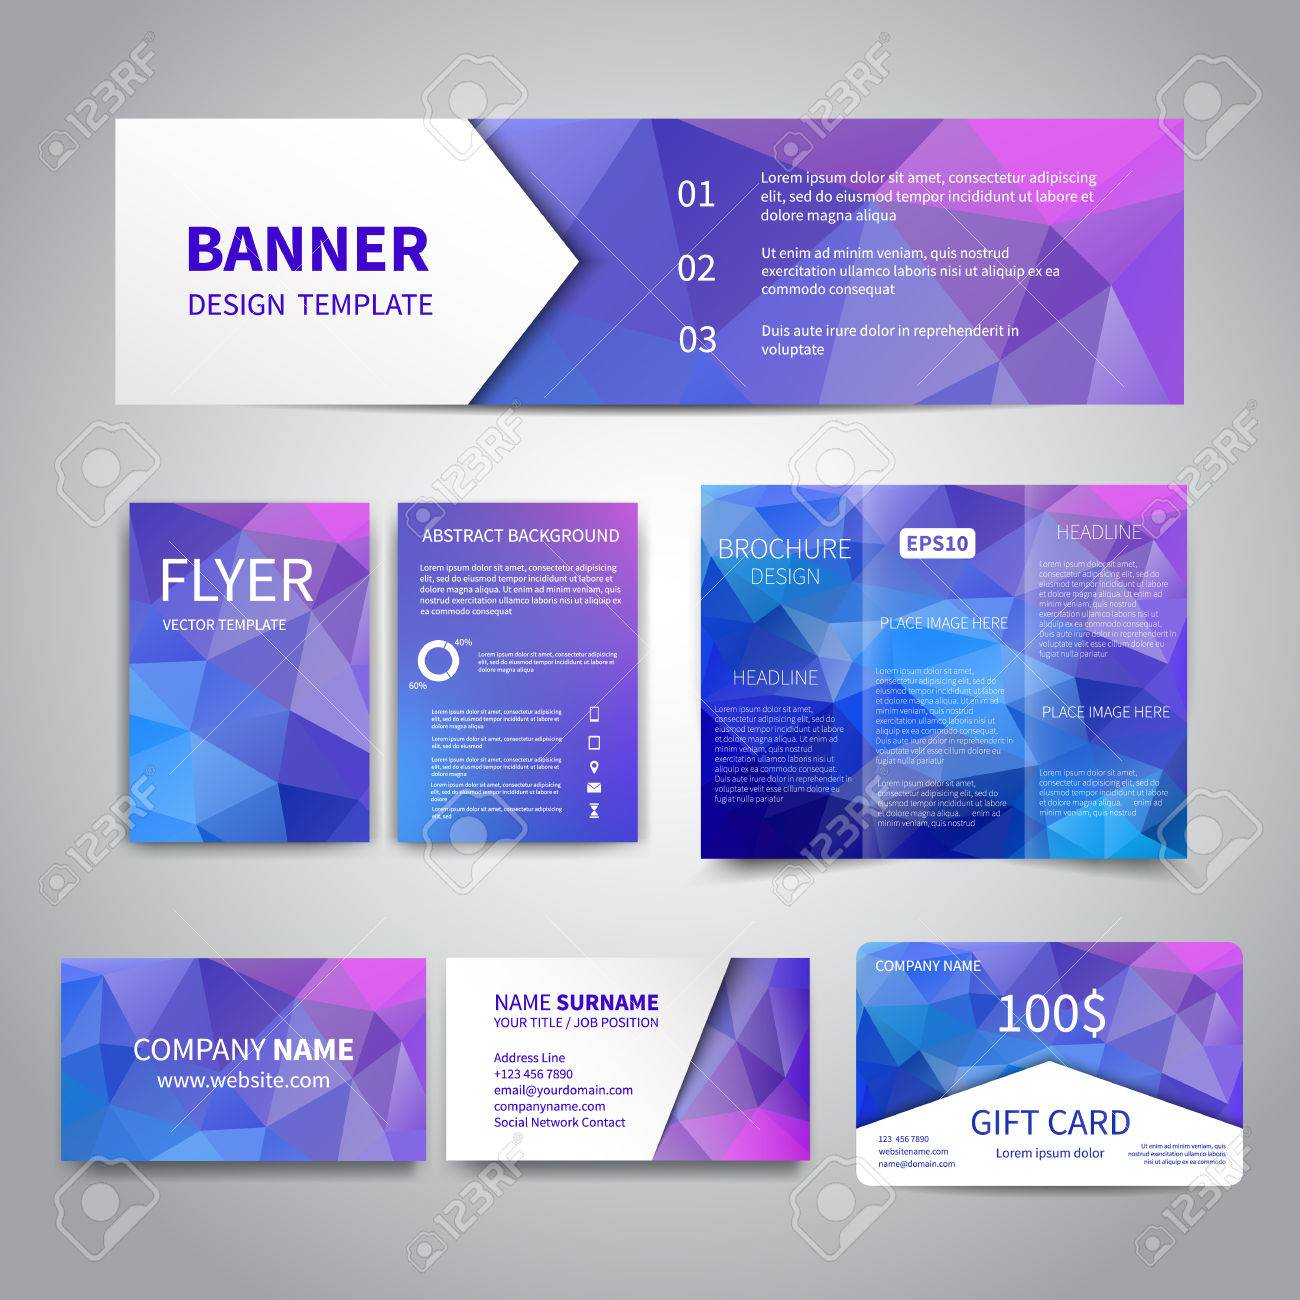 banner flyers brochure business cards gift card design banner flyers brochure business cards gift card design templates set geometric